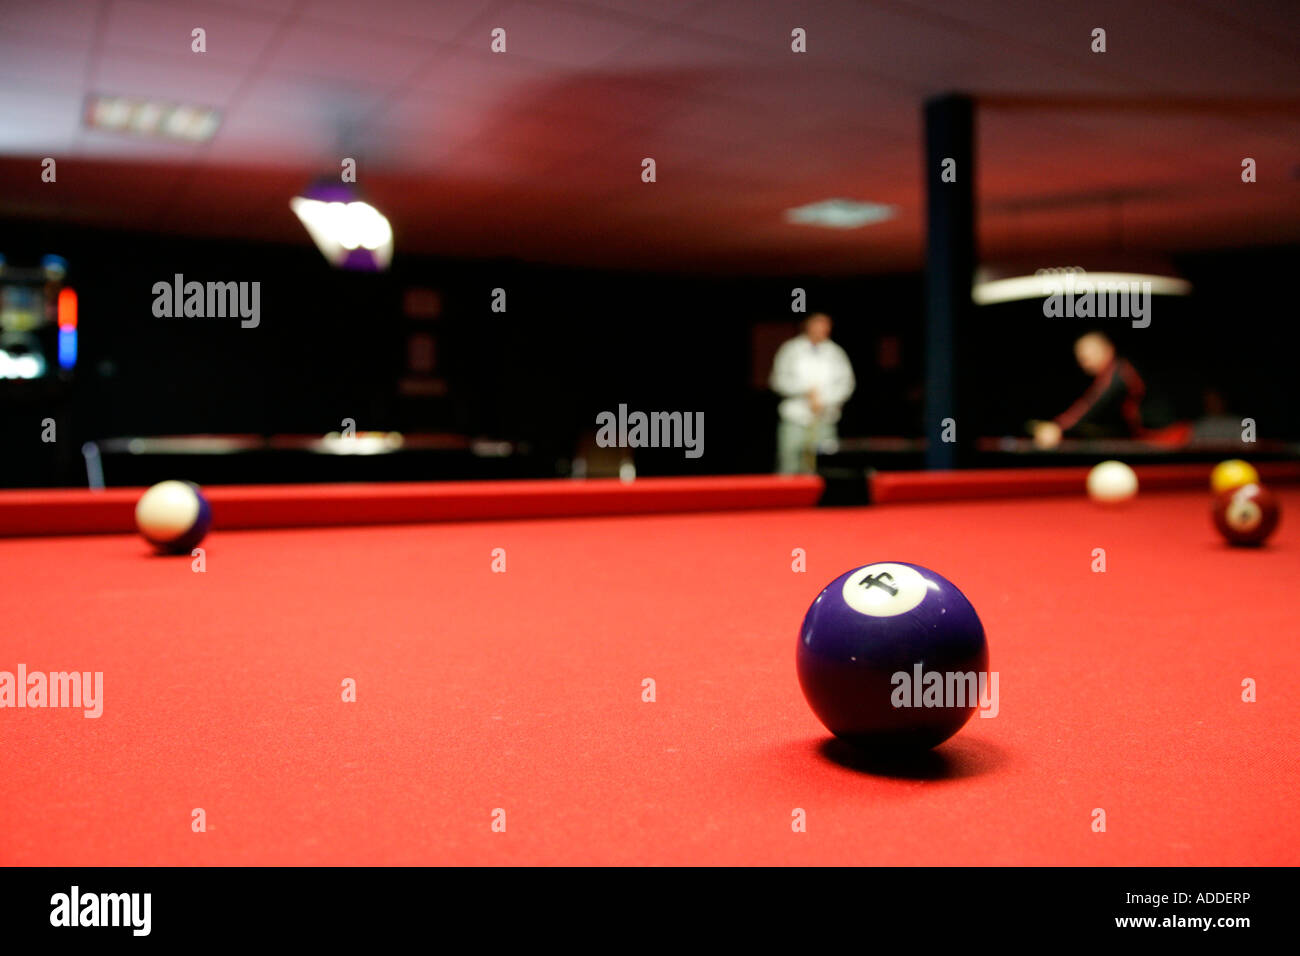 Purple 4 Ball Sitting On A Red Cloth Pool Table In A Pool Room With People